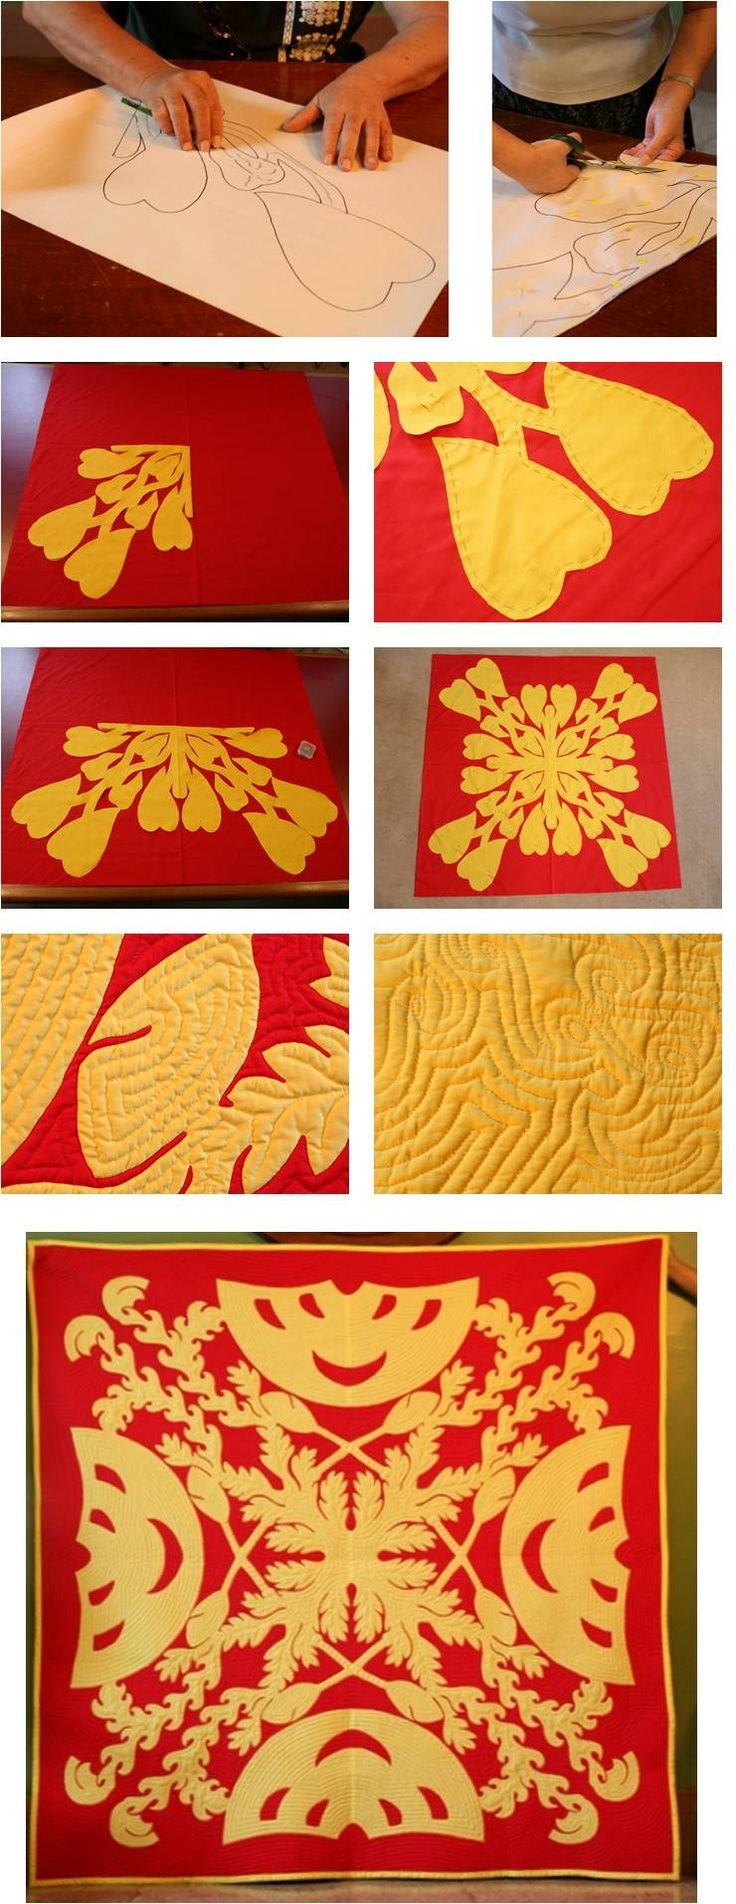 Hawaiian quilting DIY: an excellent downloadable tutorial with instructions by Cissy Serrao. The beautiful quilt pictured here was quilted and appliquéd by Doris Shibuya and designed by John Serrao. Design: The royal Symbols of the first King of Unified Hawaii.